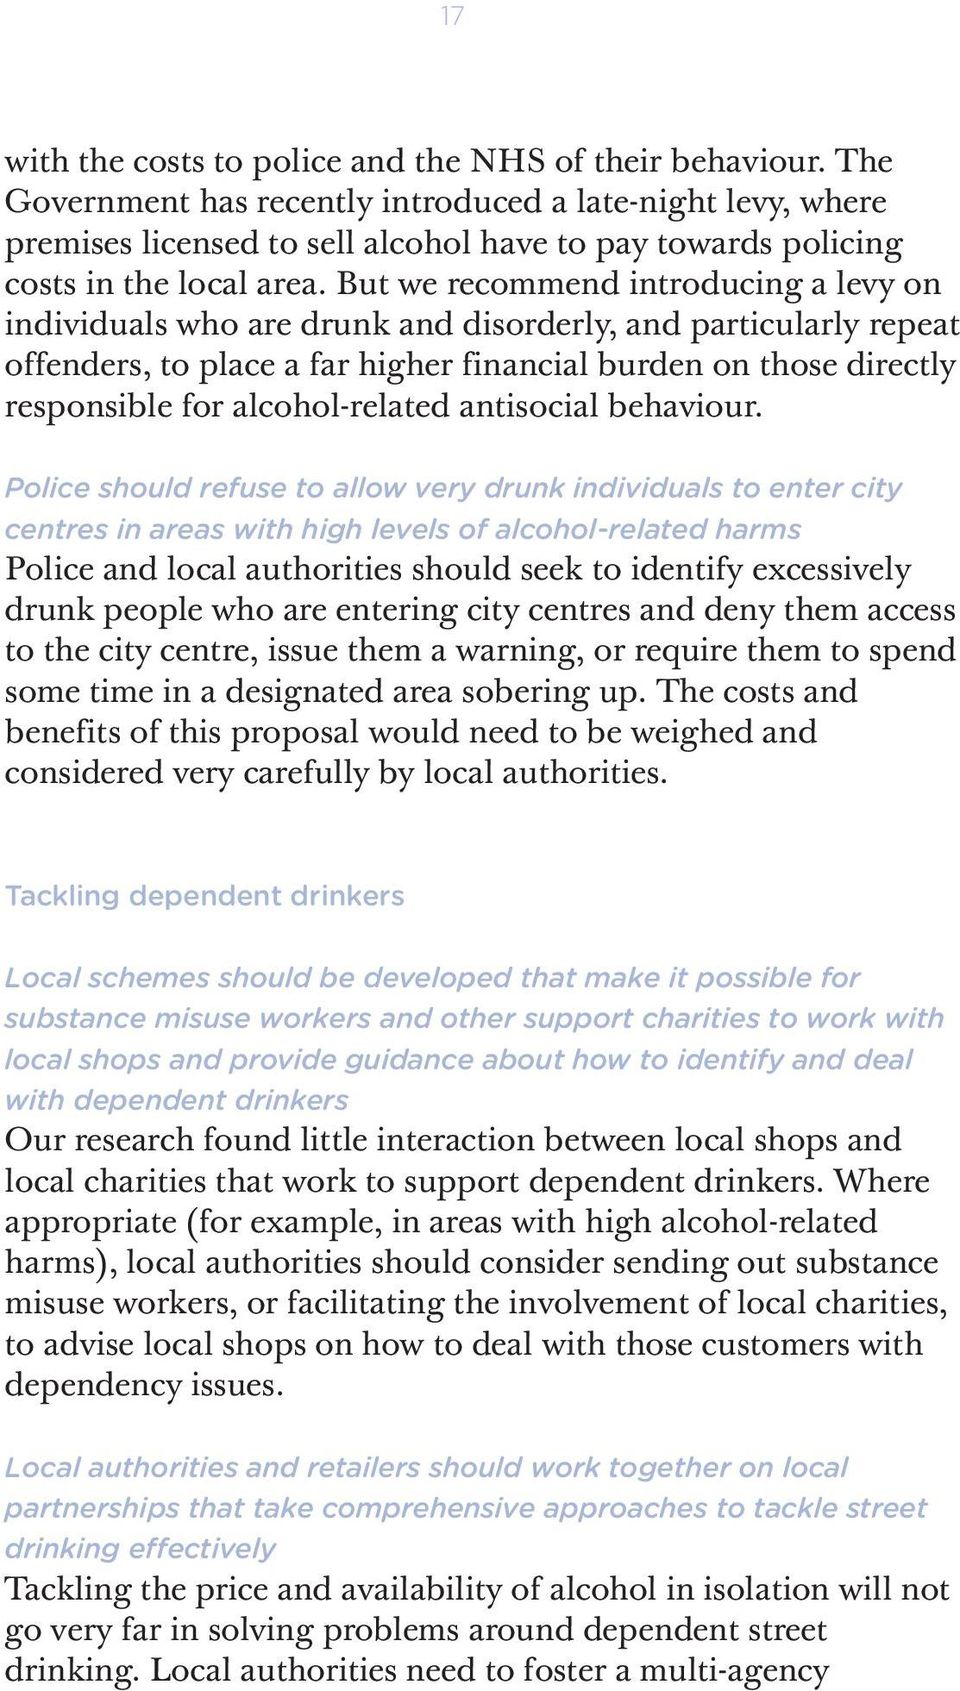 But we recommend introducing a levy on individuals who are drunk and disorderly, and particularly repeat offenders, to place a far higher financial burden on those directly responsible for